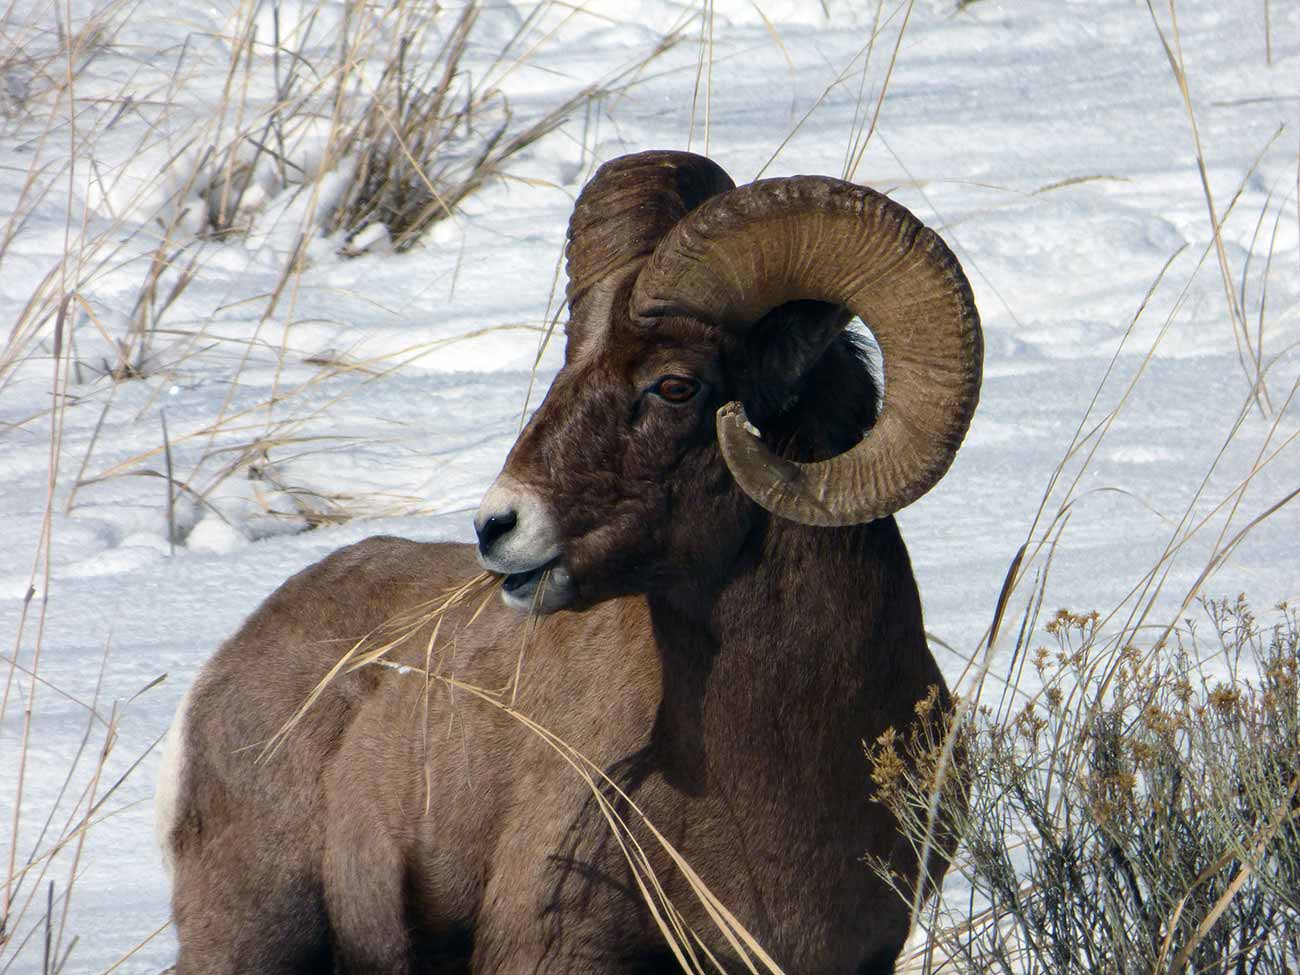 Winter bighorn sheep